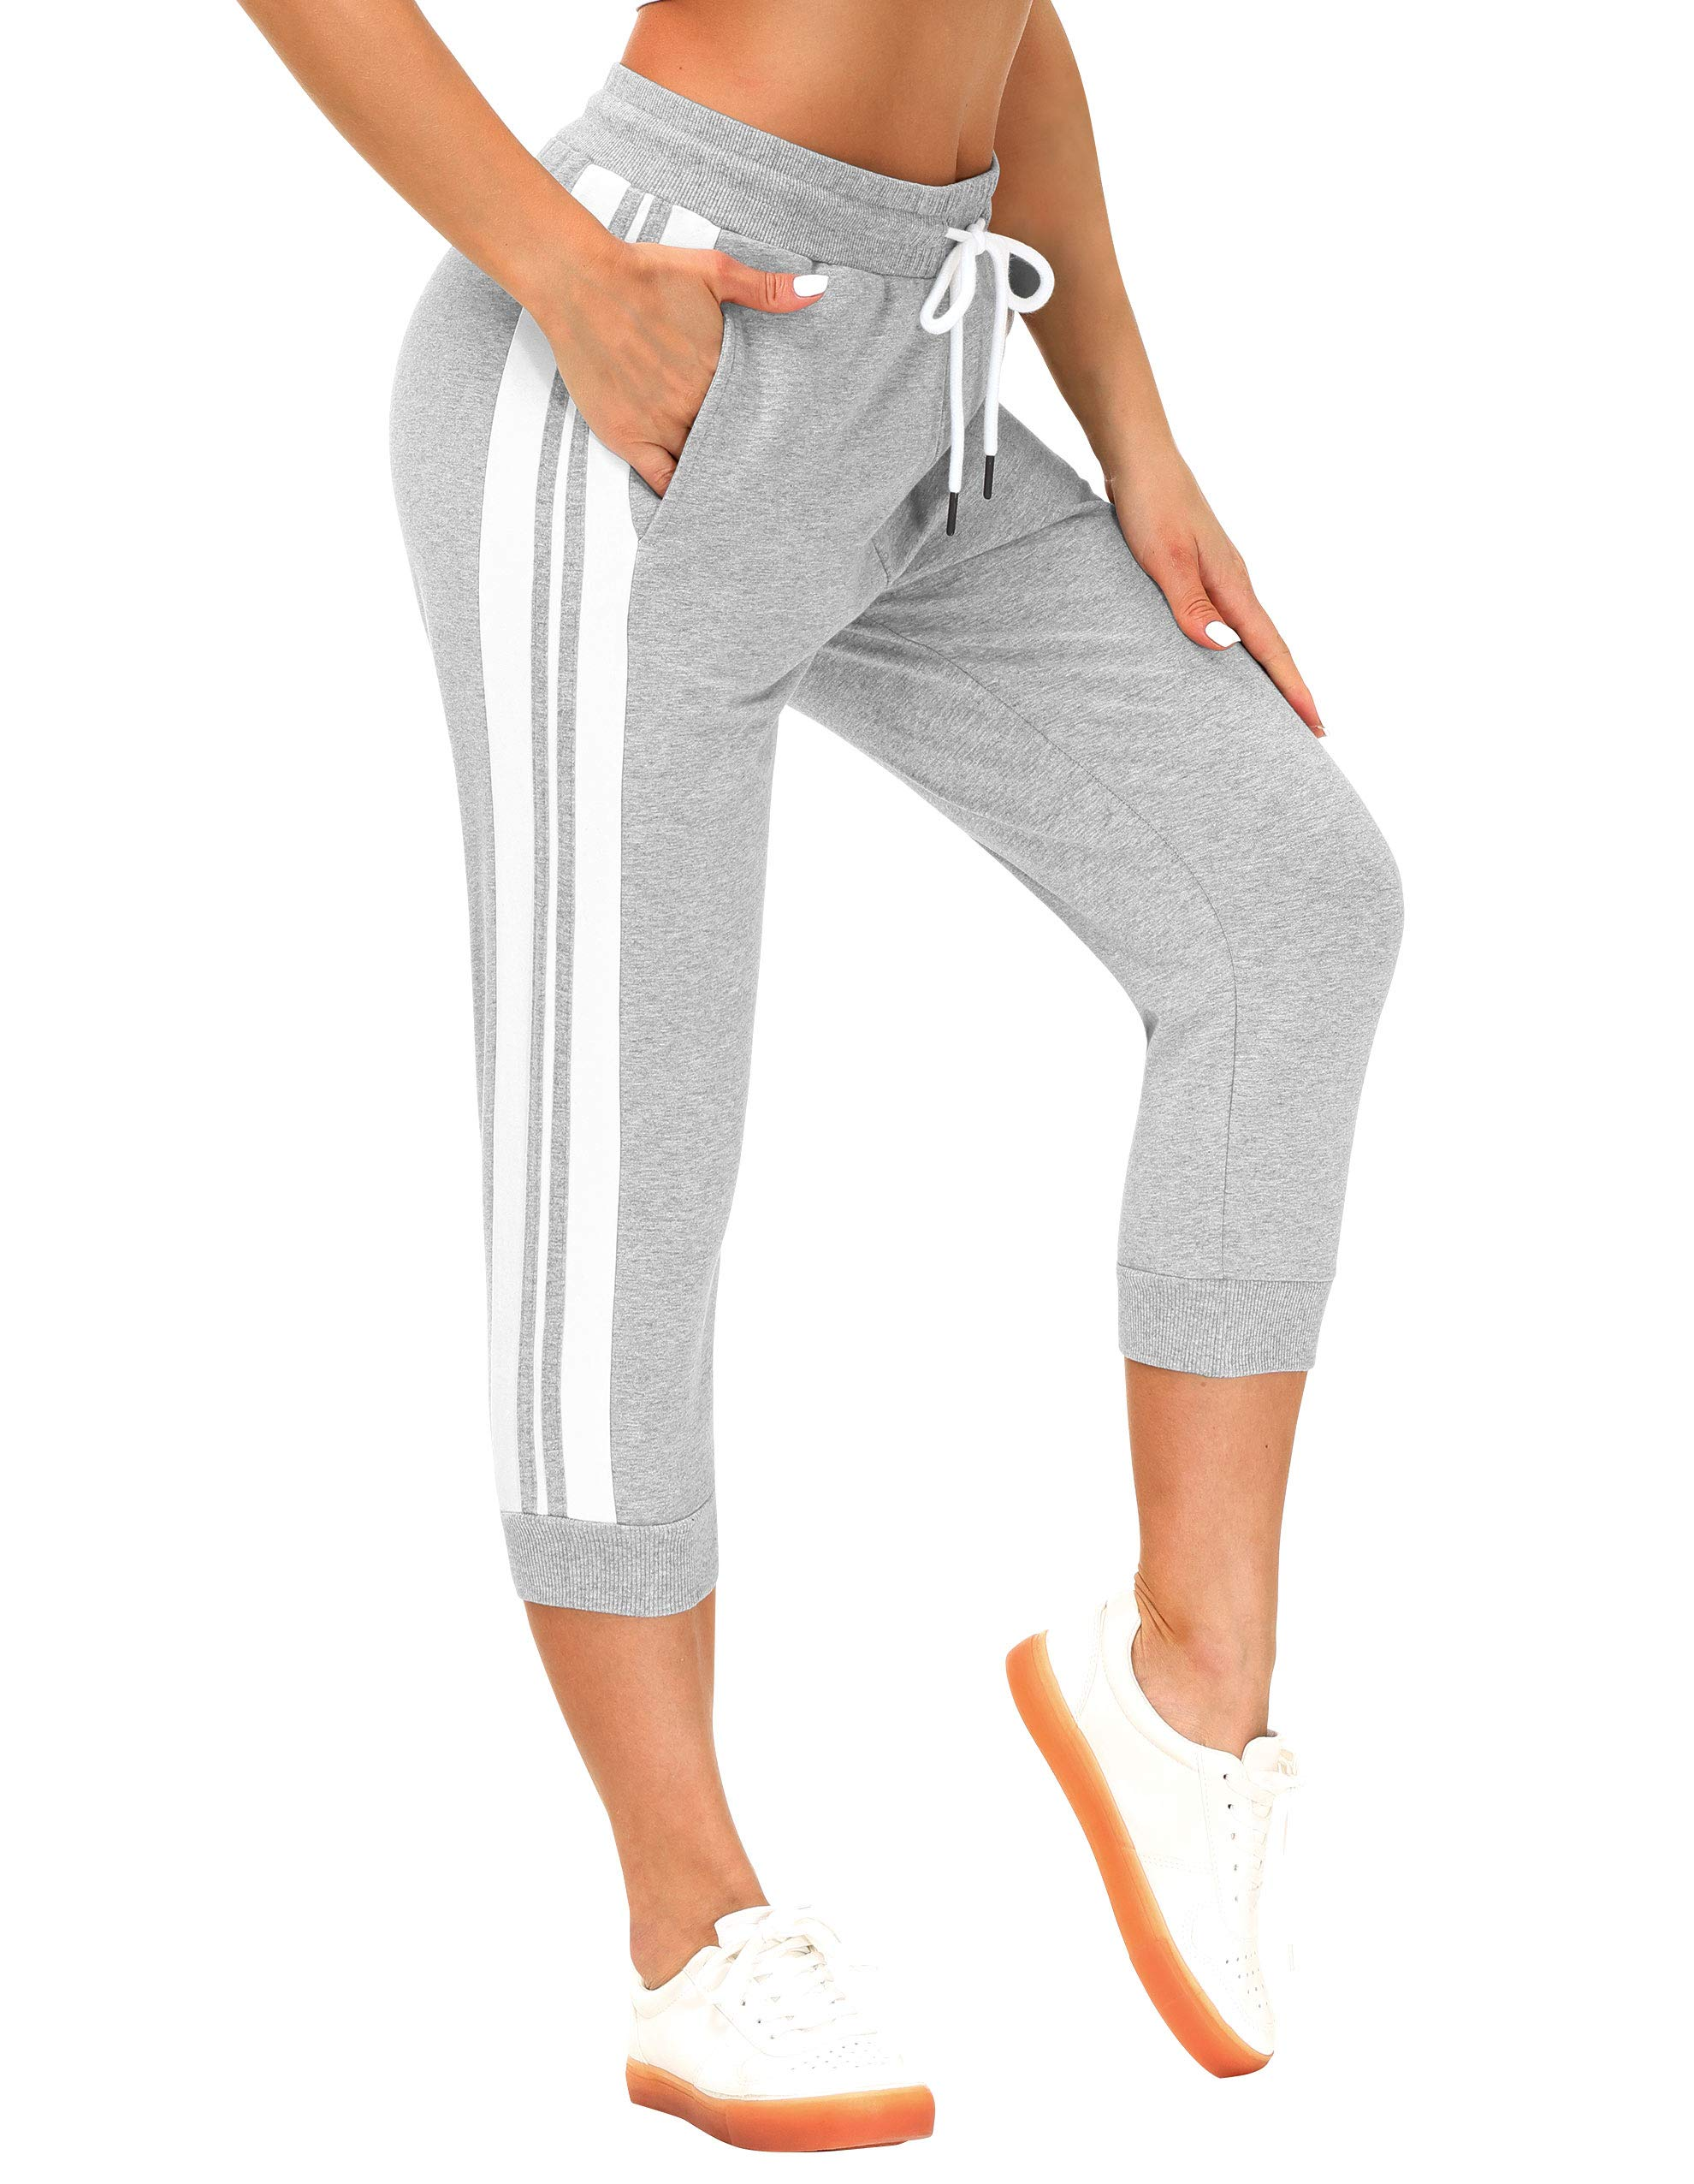 SPECIALMAGIC Capri Sweatpants for Women Sports Running Casual Cropped Jogger Pants with Pockets